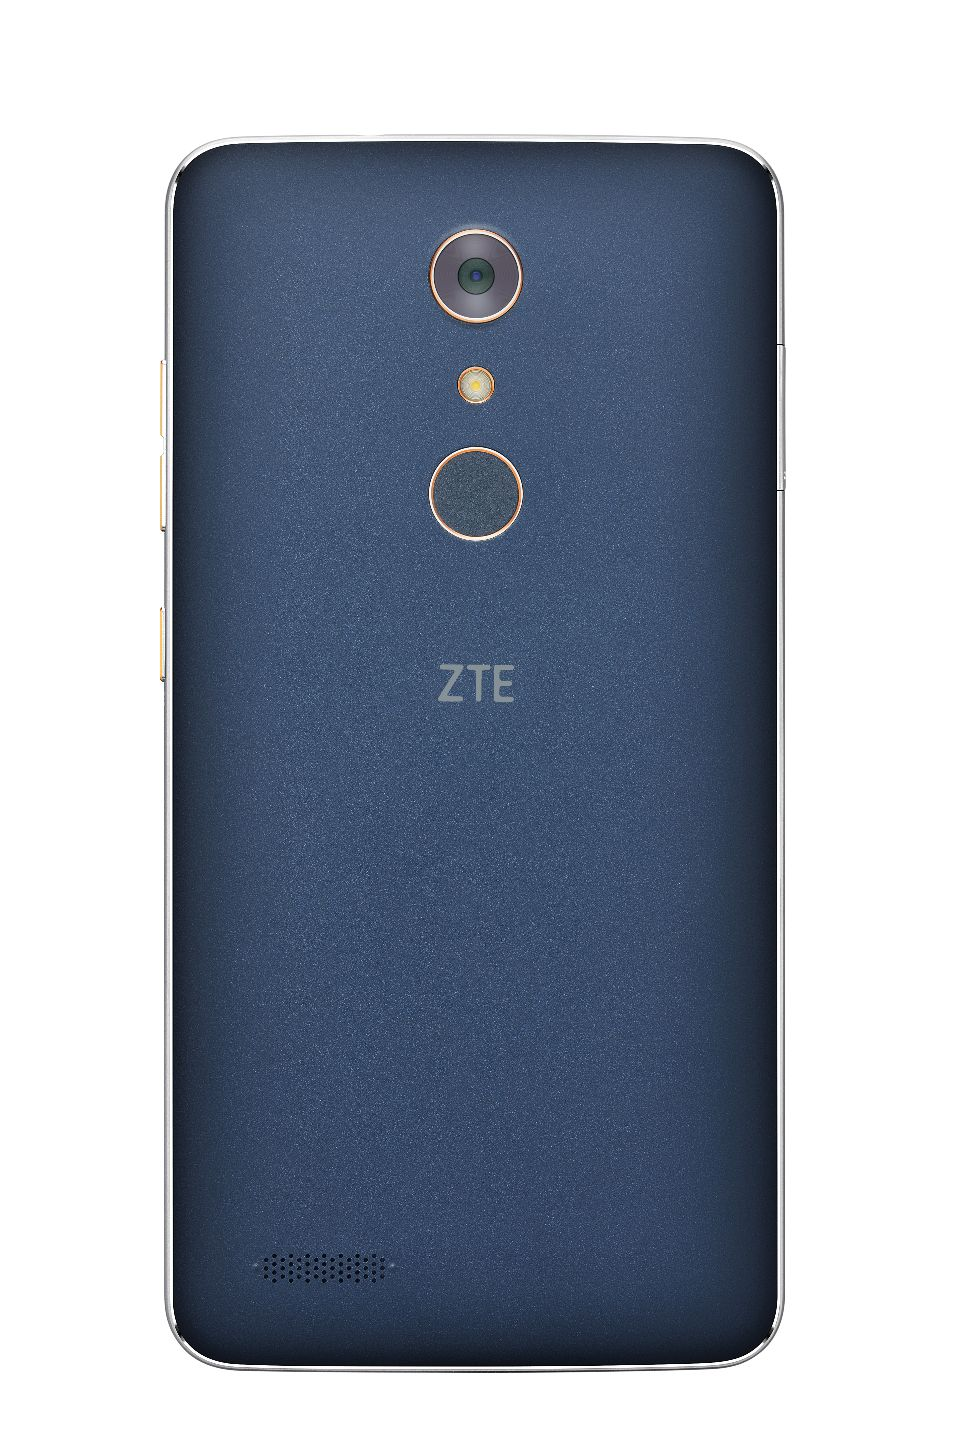 most downloaded zte zmax pro charger metropcs can